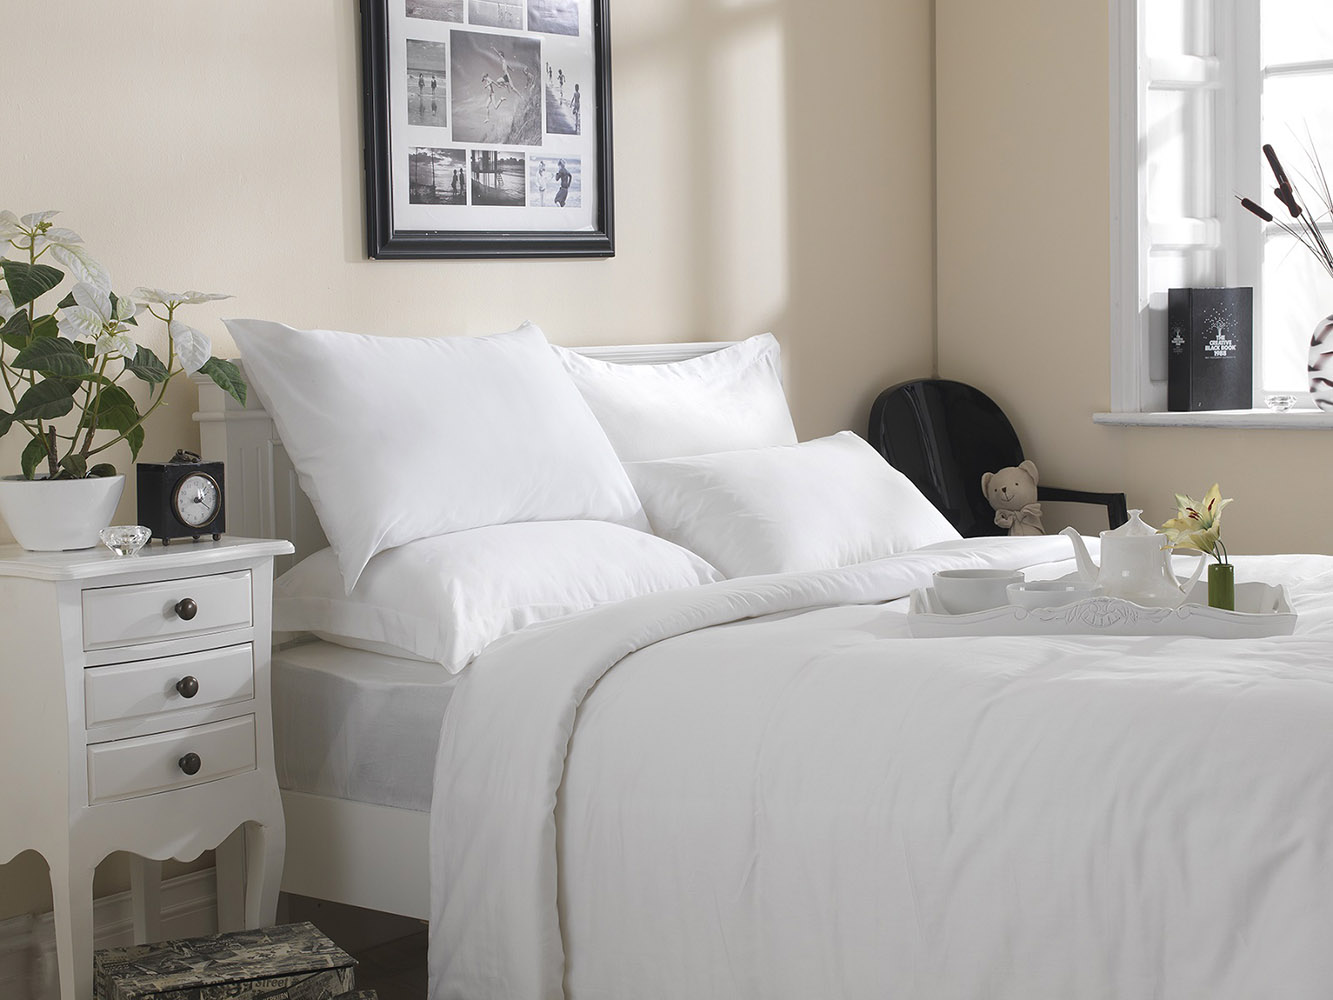 Premium White Linen Range - 20 or 30 Twill Pattern 100% Cotton Fitted Sheets in White